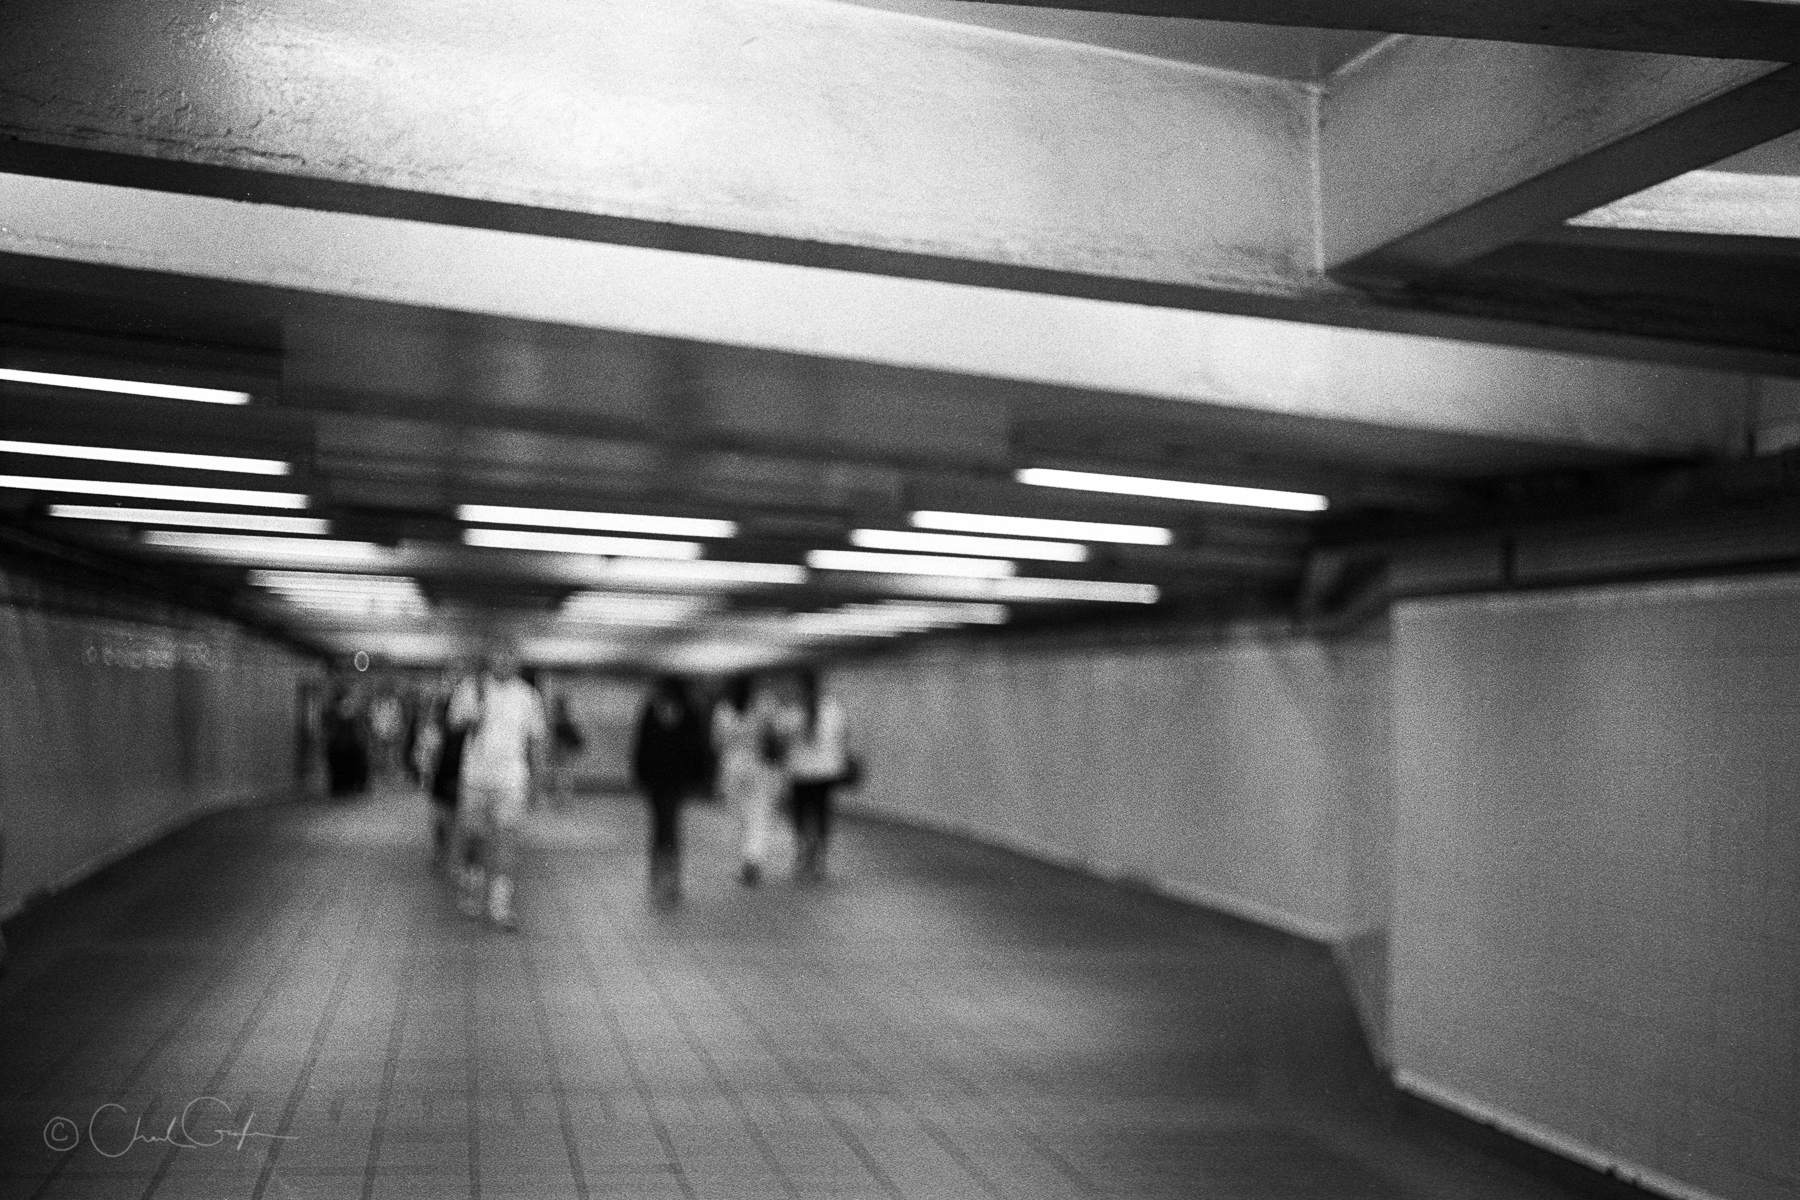 Subway Tunnel Abstract Figures by Chad Gayle (Image)